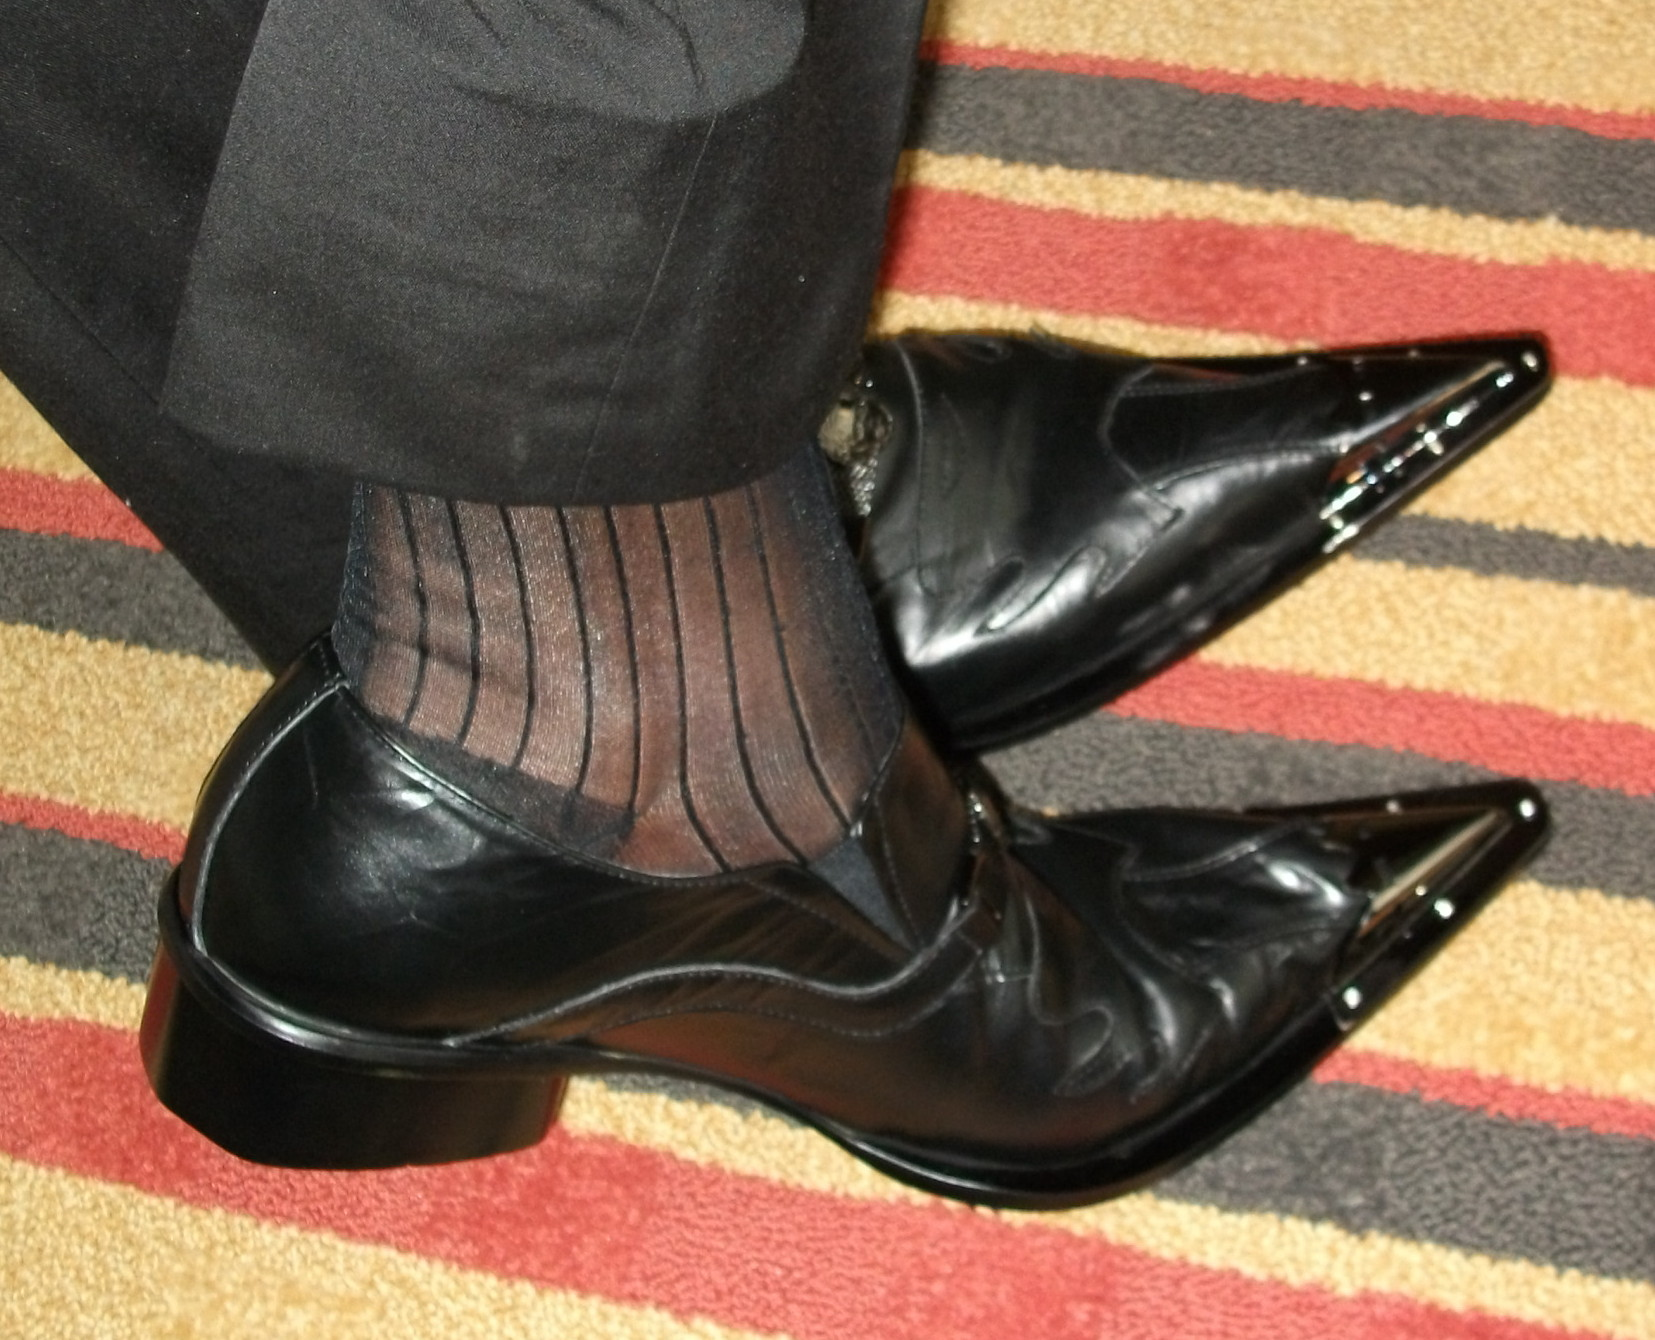 Clevis Shoes From The Sock Man Socks Current Stock